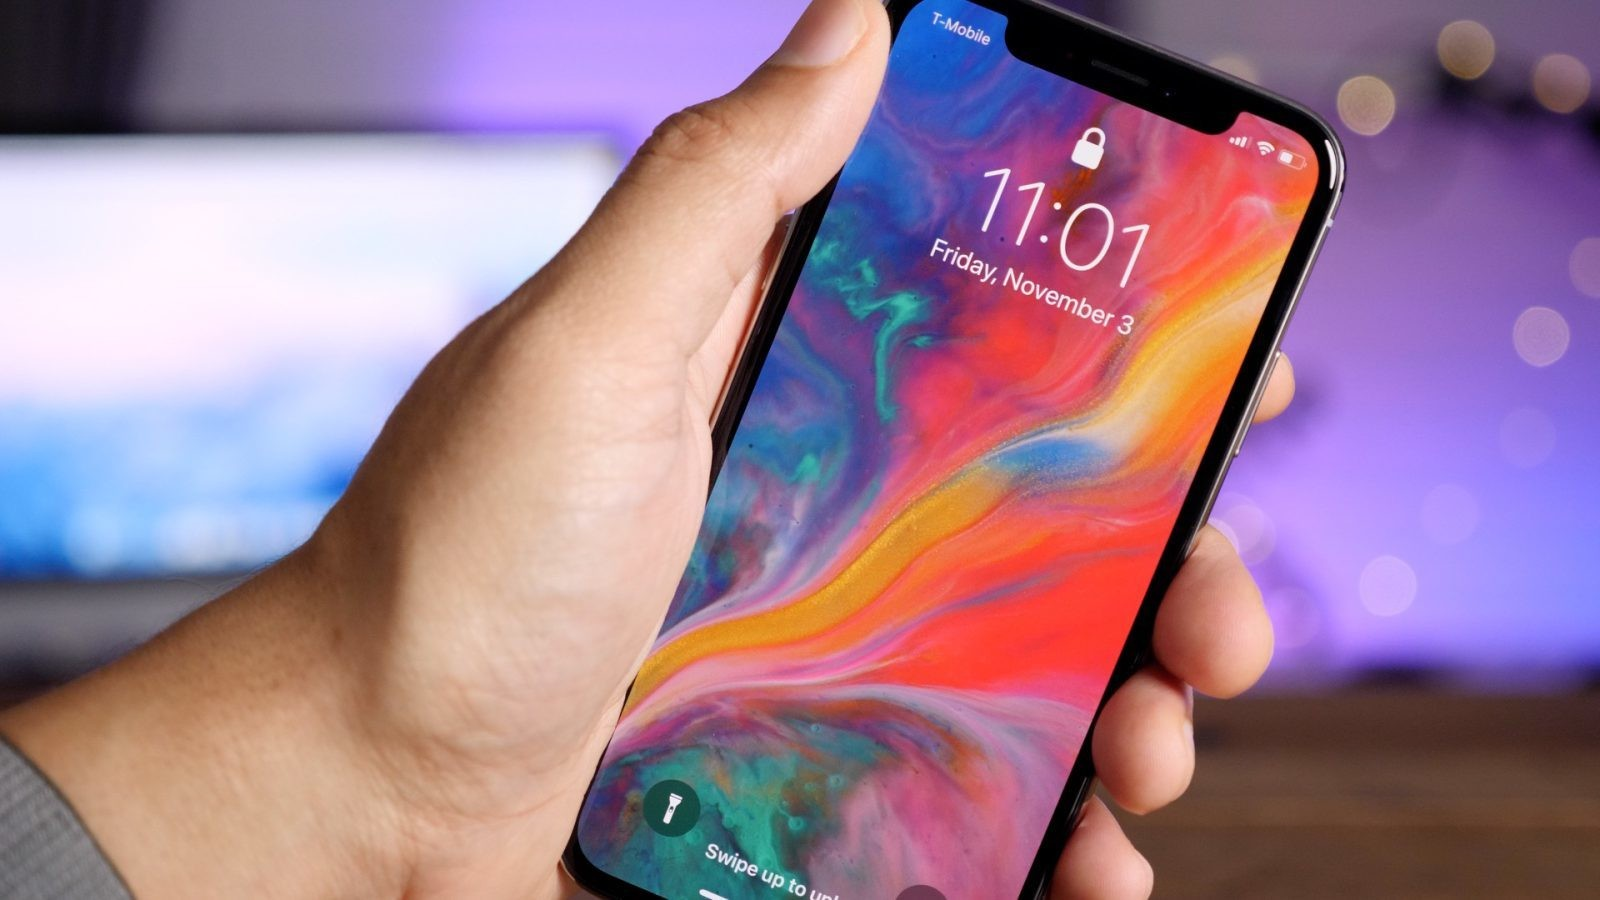 TIME names iPhone X 2nd best gadget of 2017, Apple Watch Series 3 makes top ten